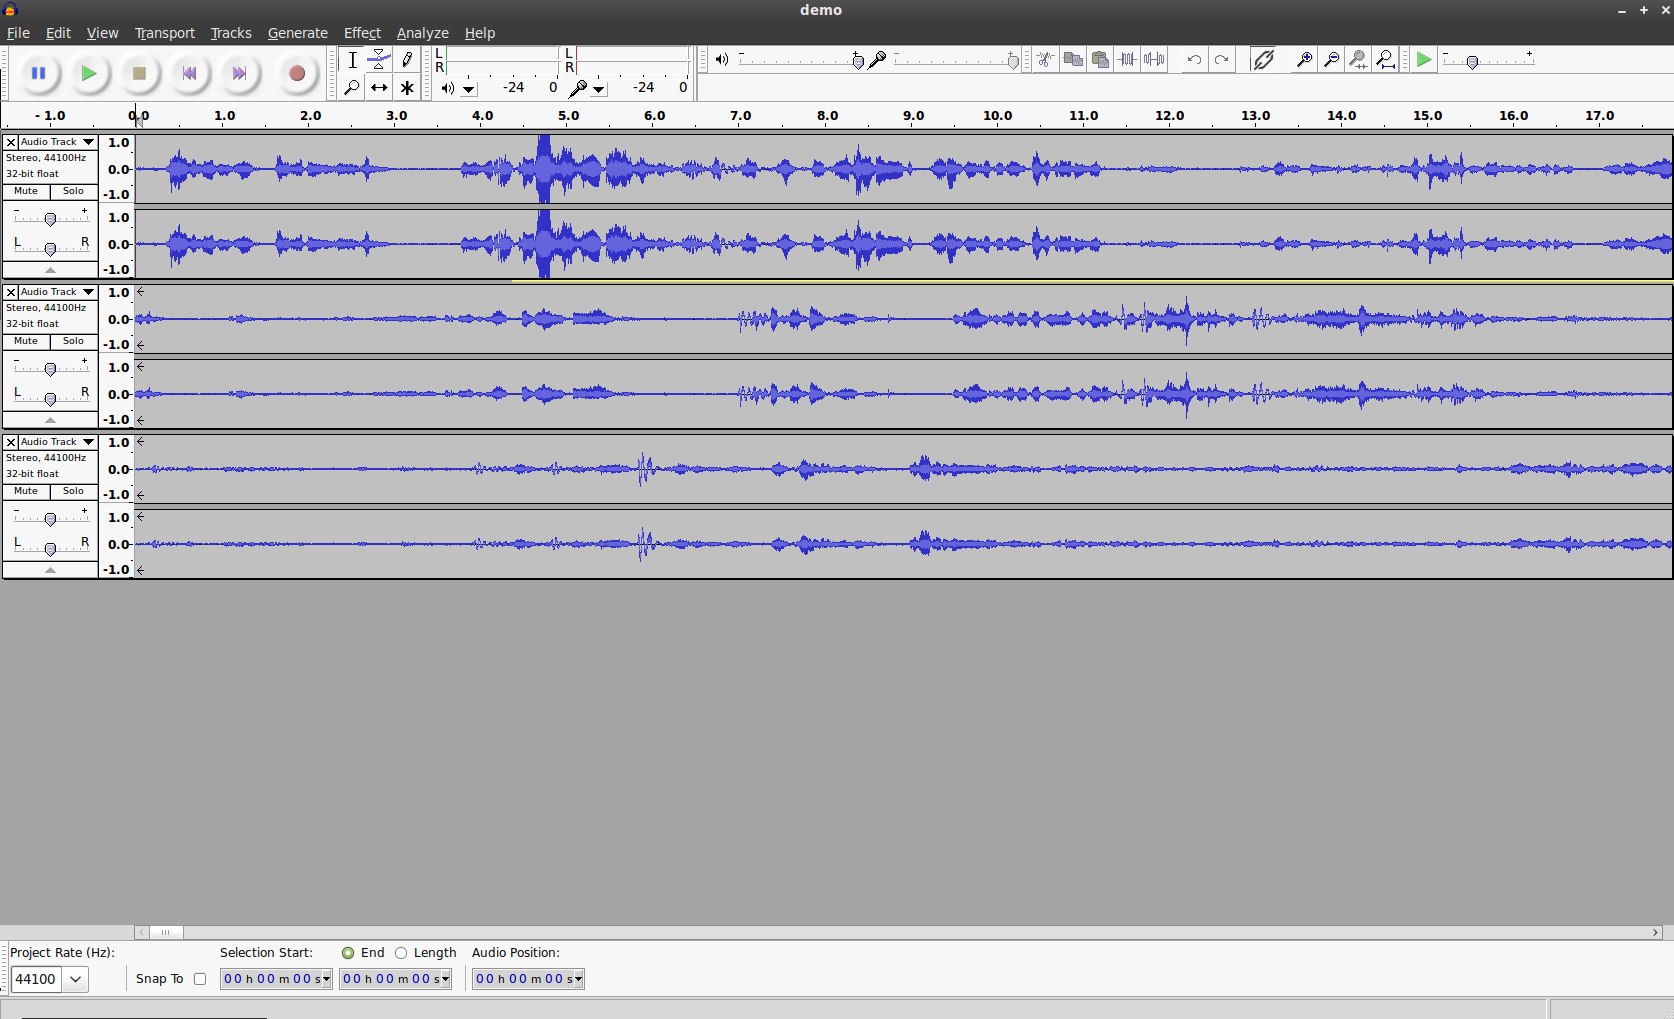 Blast from the Past: My Search for the Best Audio Editing